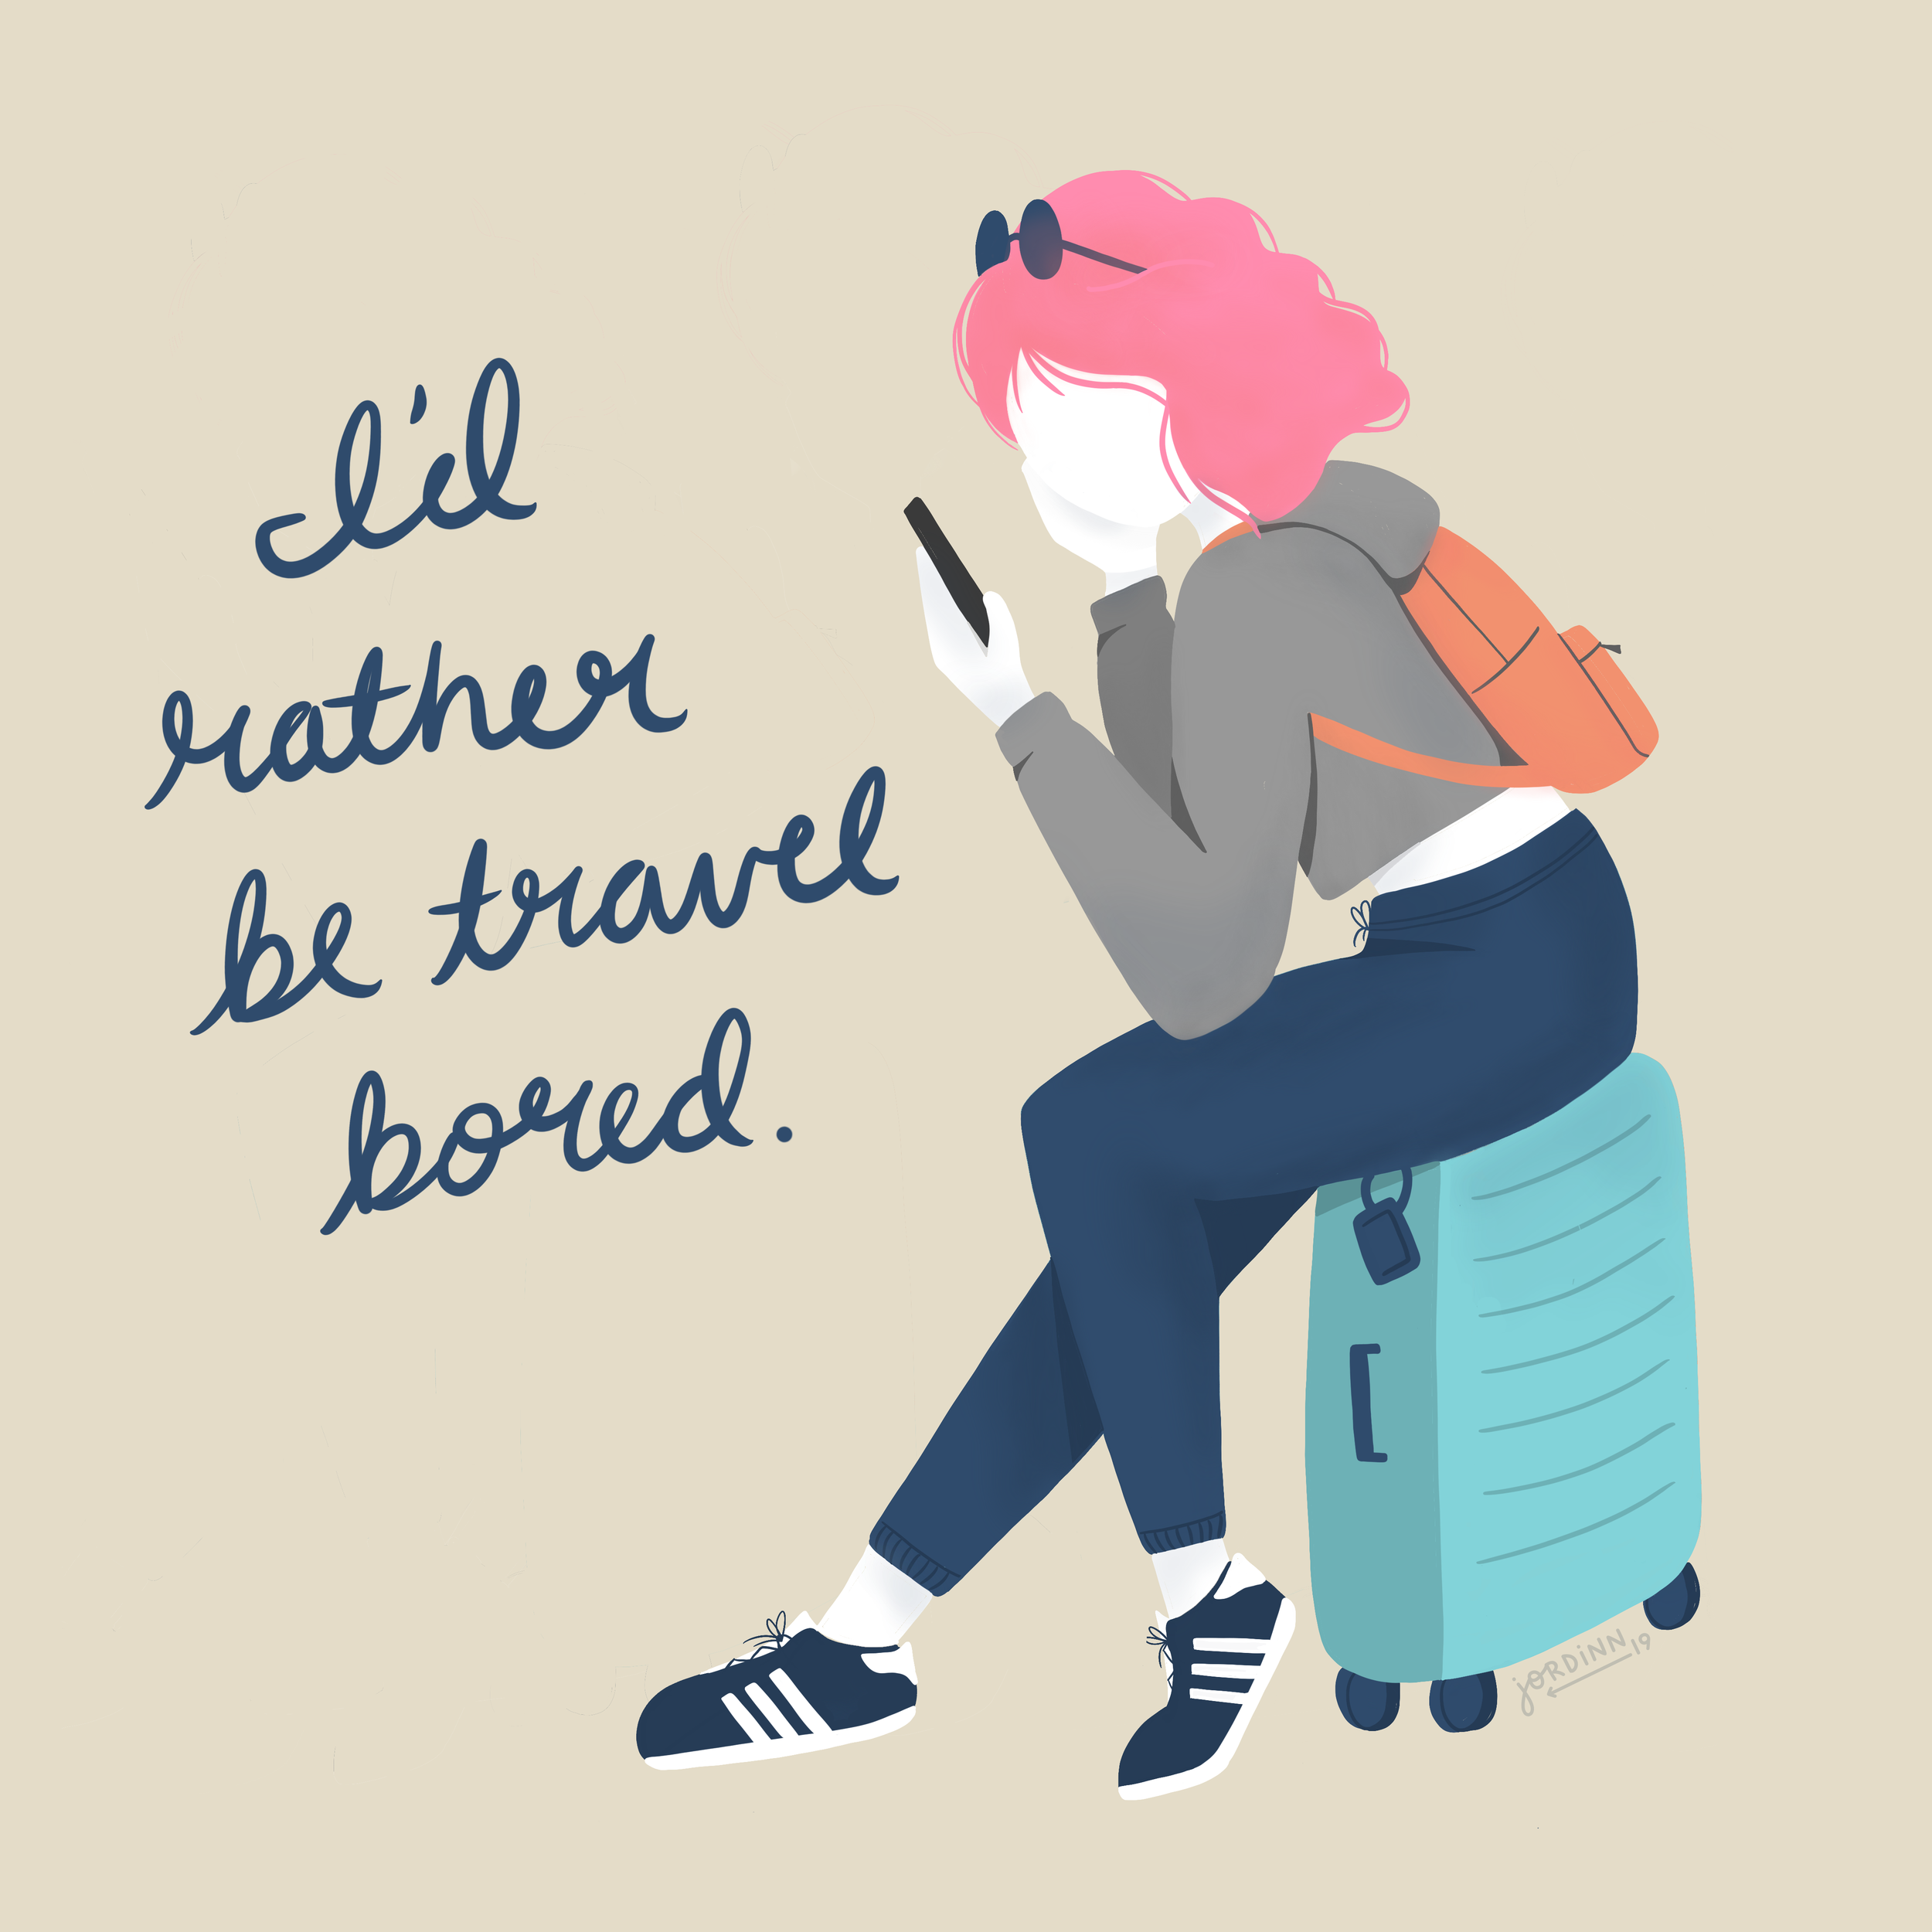 Travel_Bored2.png